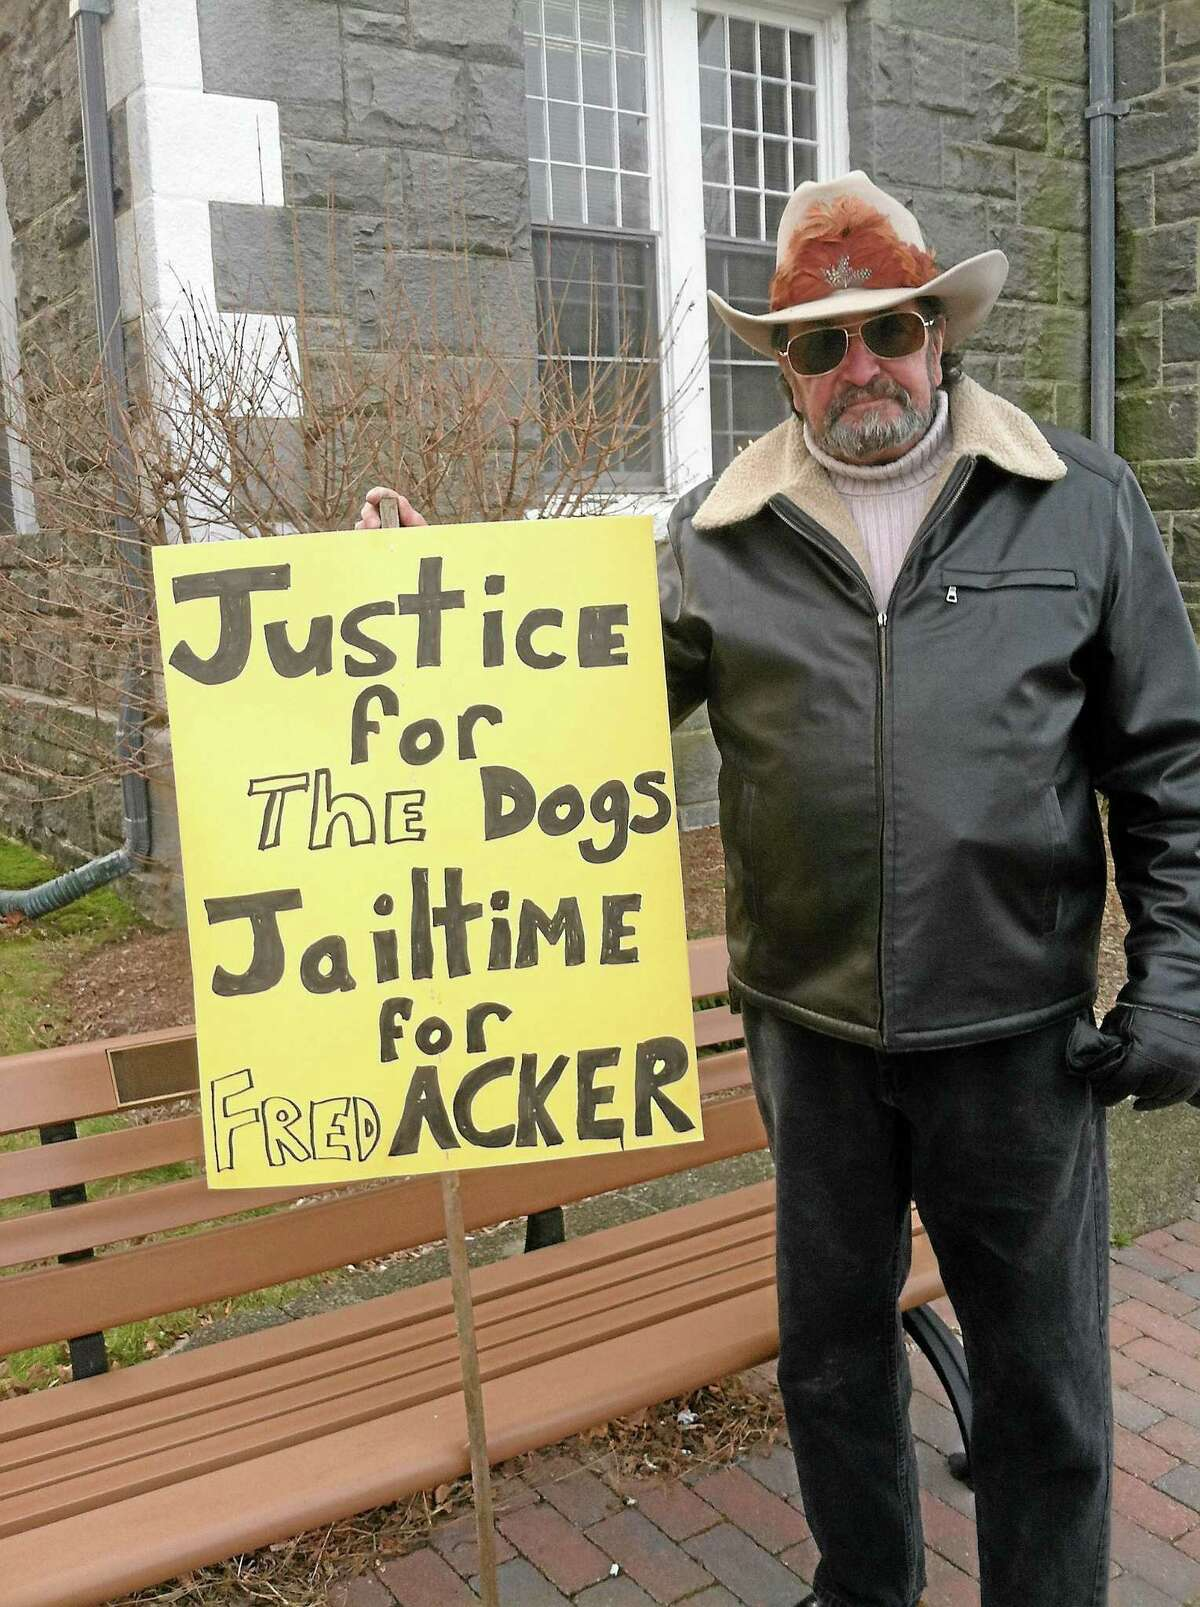 Retired Stratford animal control officer Michael Griffin holds a sign outside of Litchfield Superior Court in 2012, before a court appearance by Frederick Acker, who was later found guilty of 15 counts of cruelty to animals by a Litchfield judge.